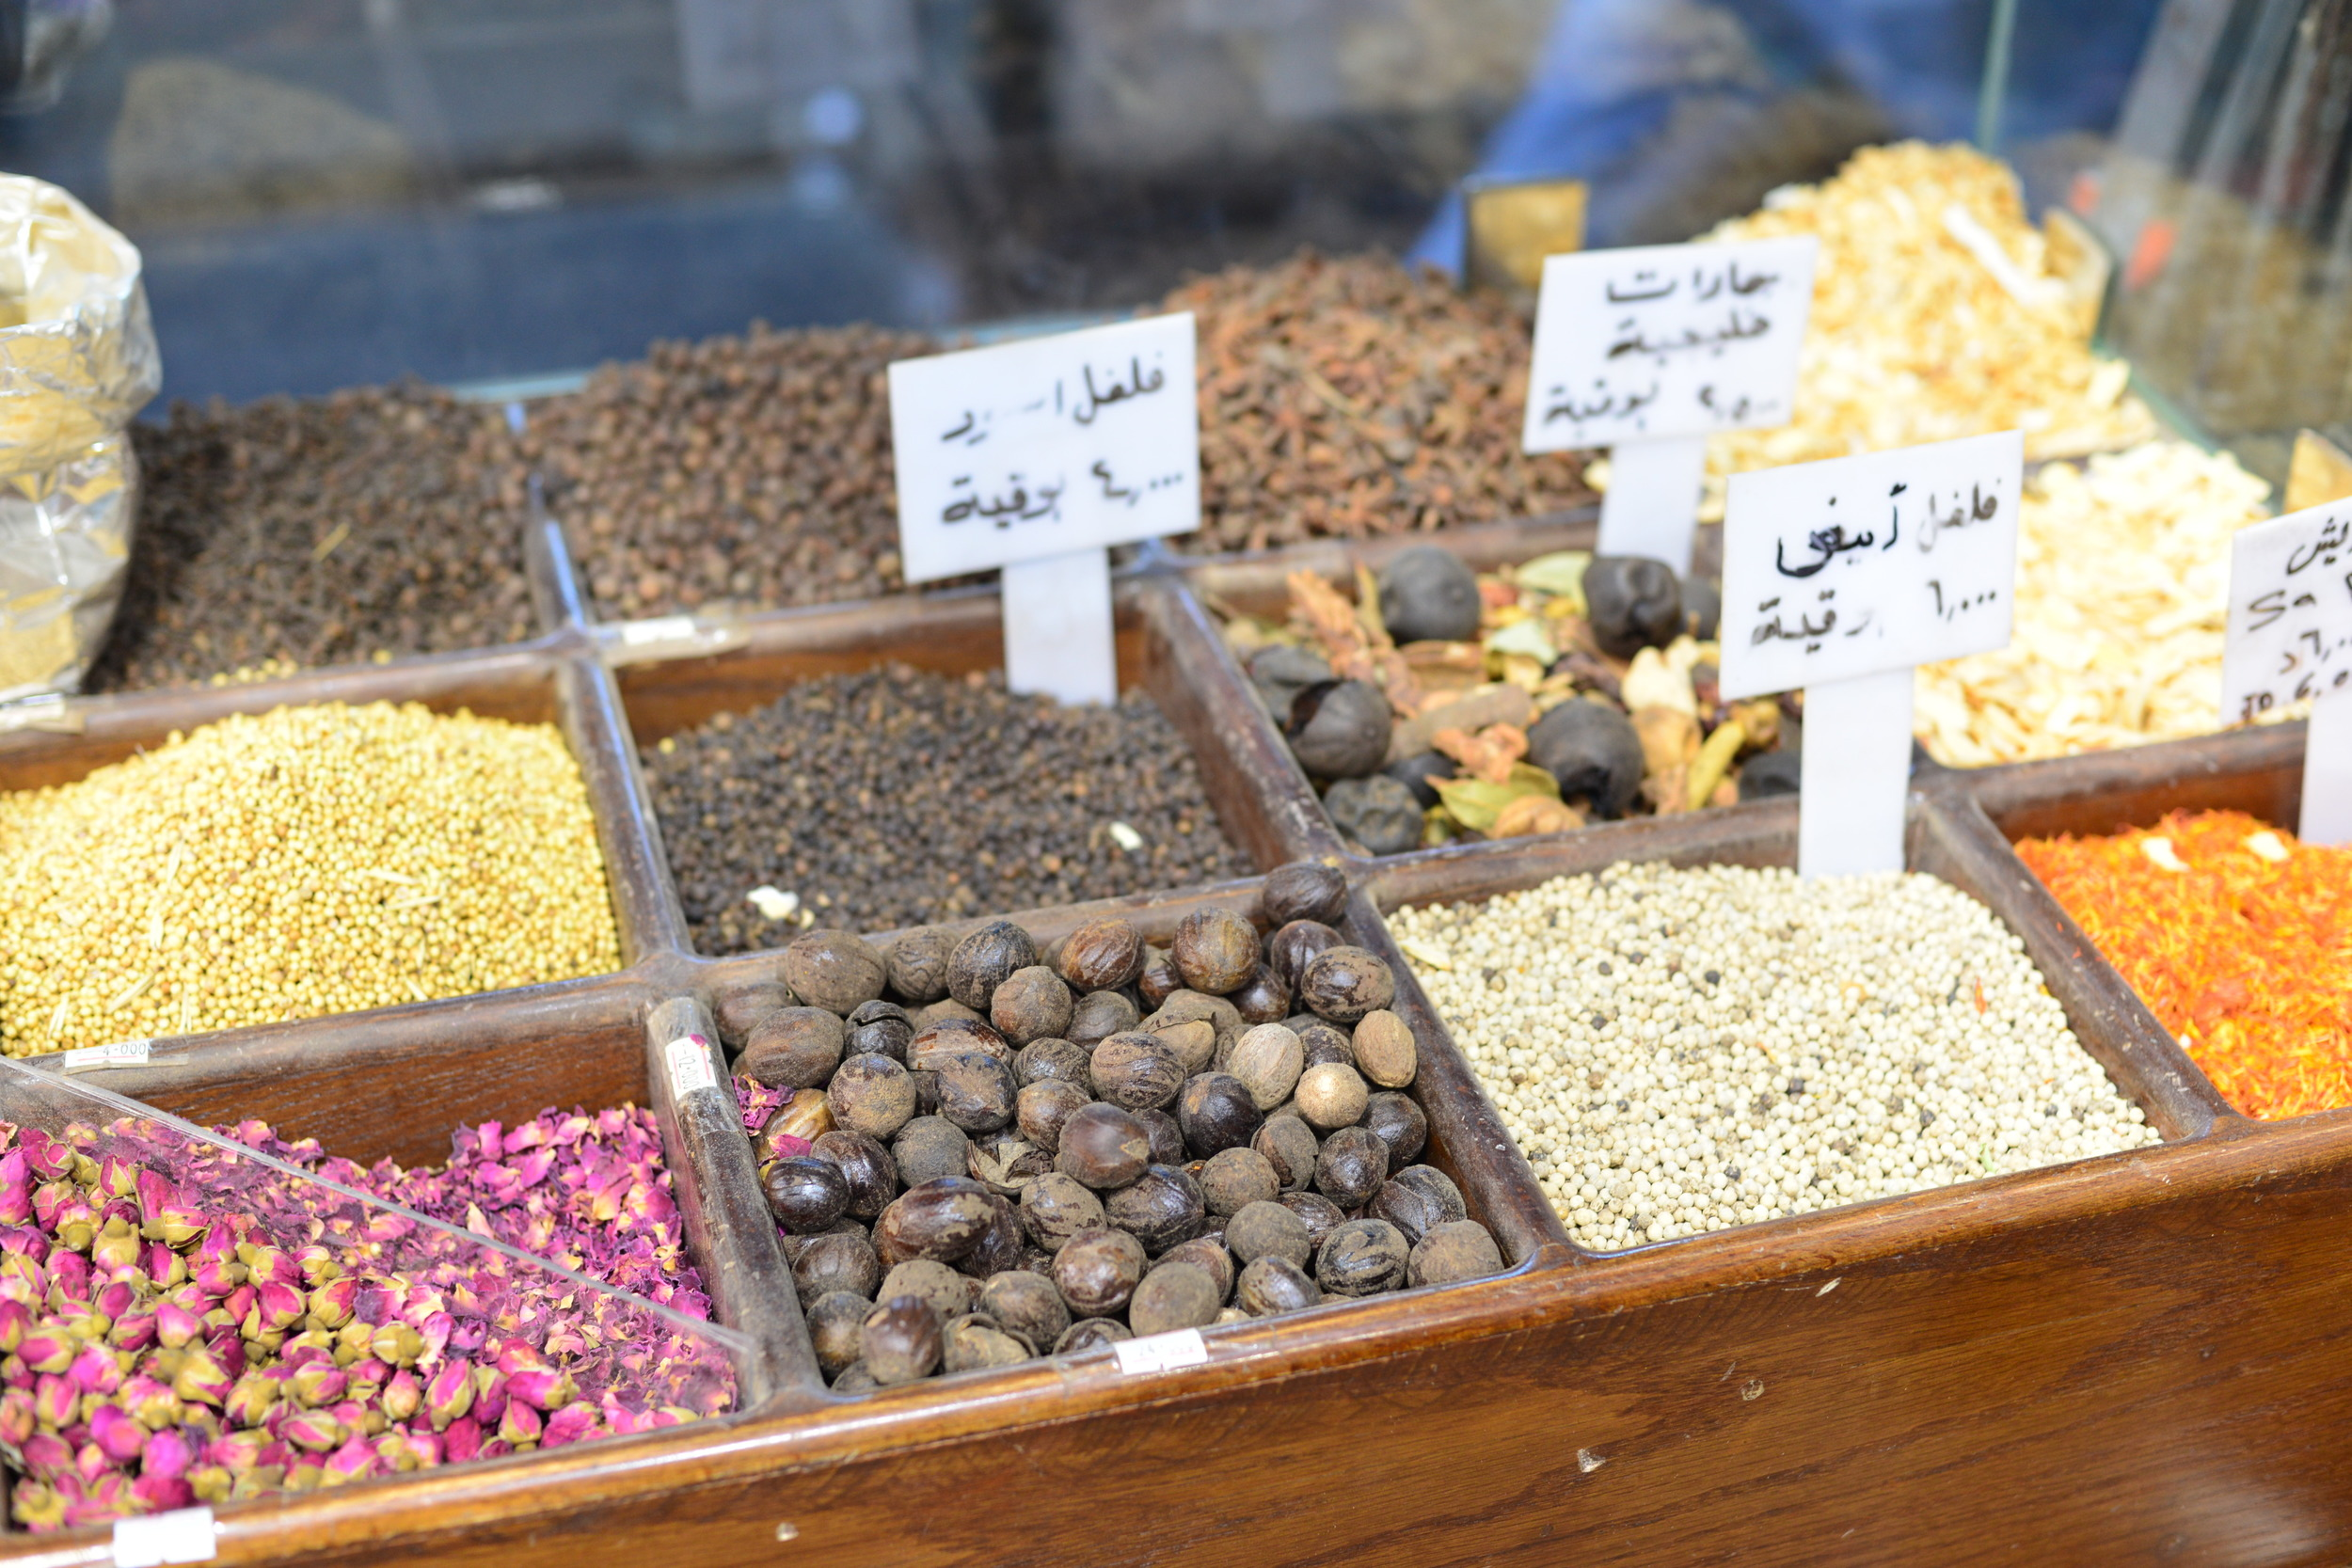 Here are some of the amazing spices you can find in the market in downtown Amman.  I love exploring the little spice shops and asking the vendors about their specialty spice blends.